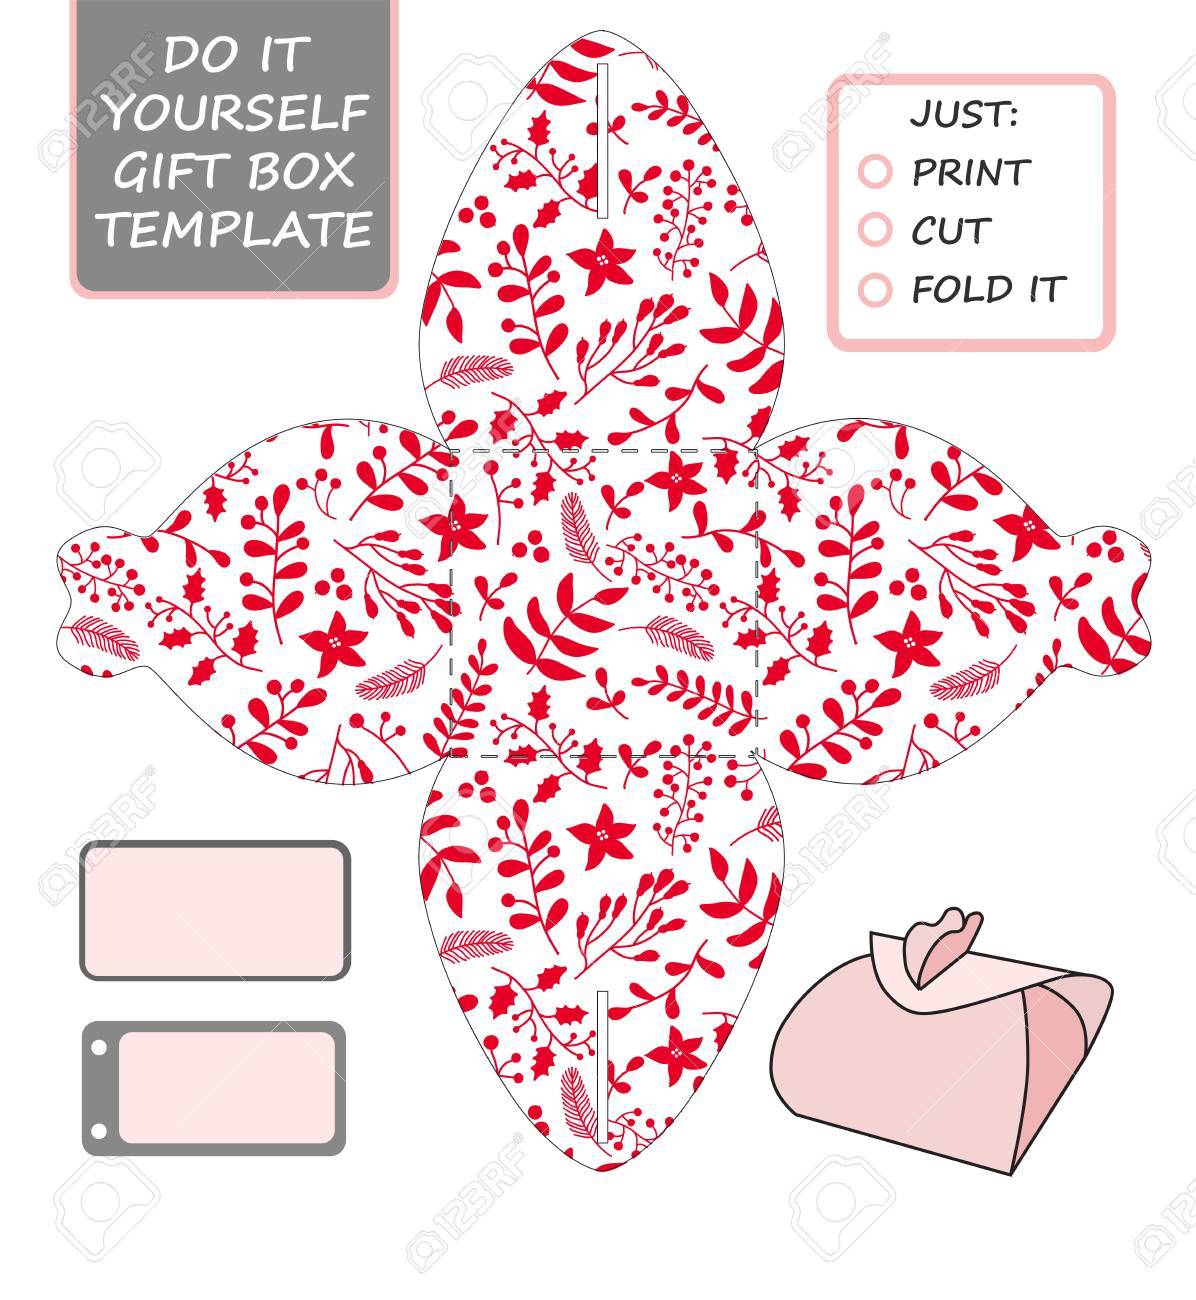 Christmas vector gift packaging template favor gift box die christmas vector gift packaging template favor gift box die cut box template solutioingenieria Images